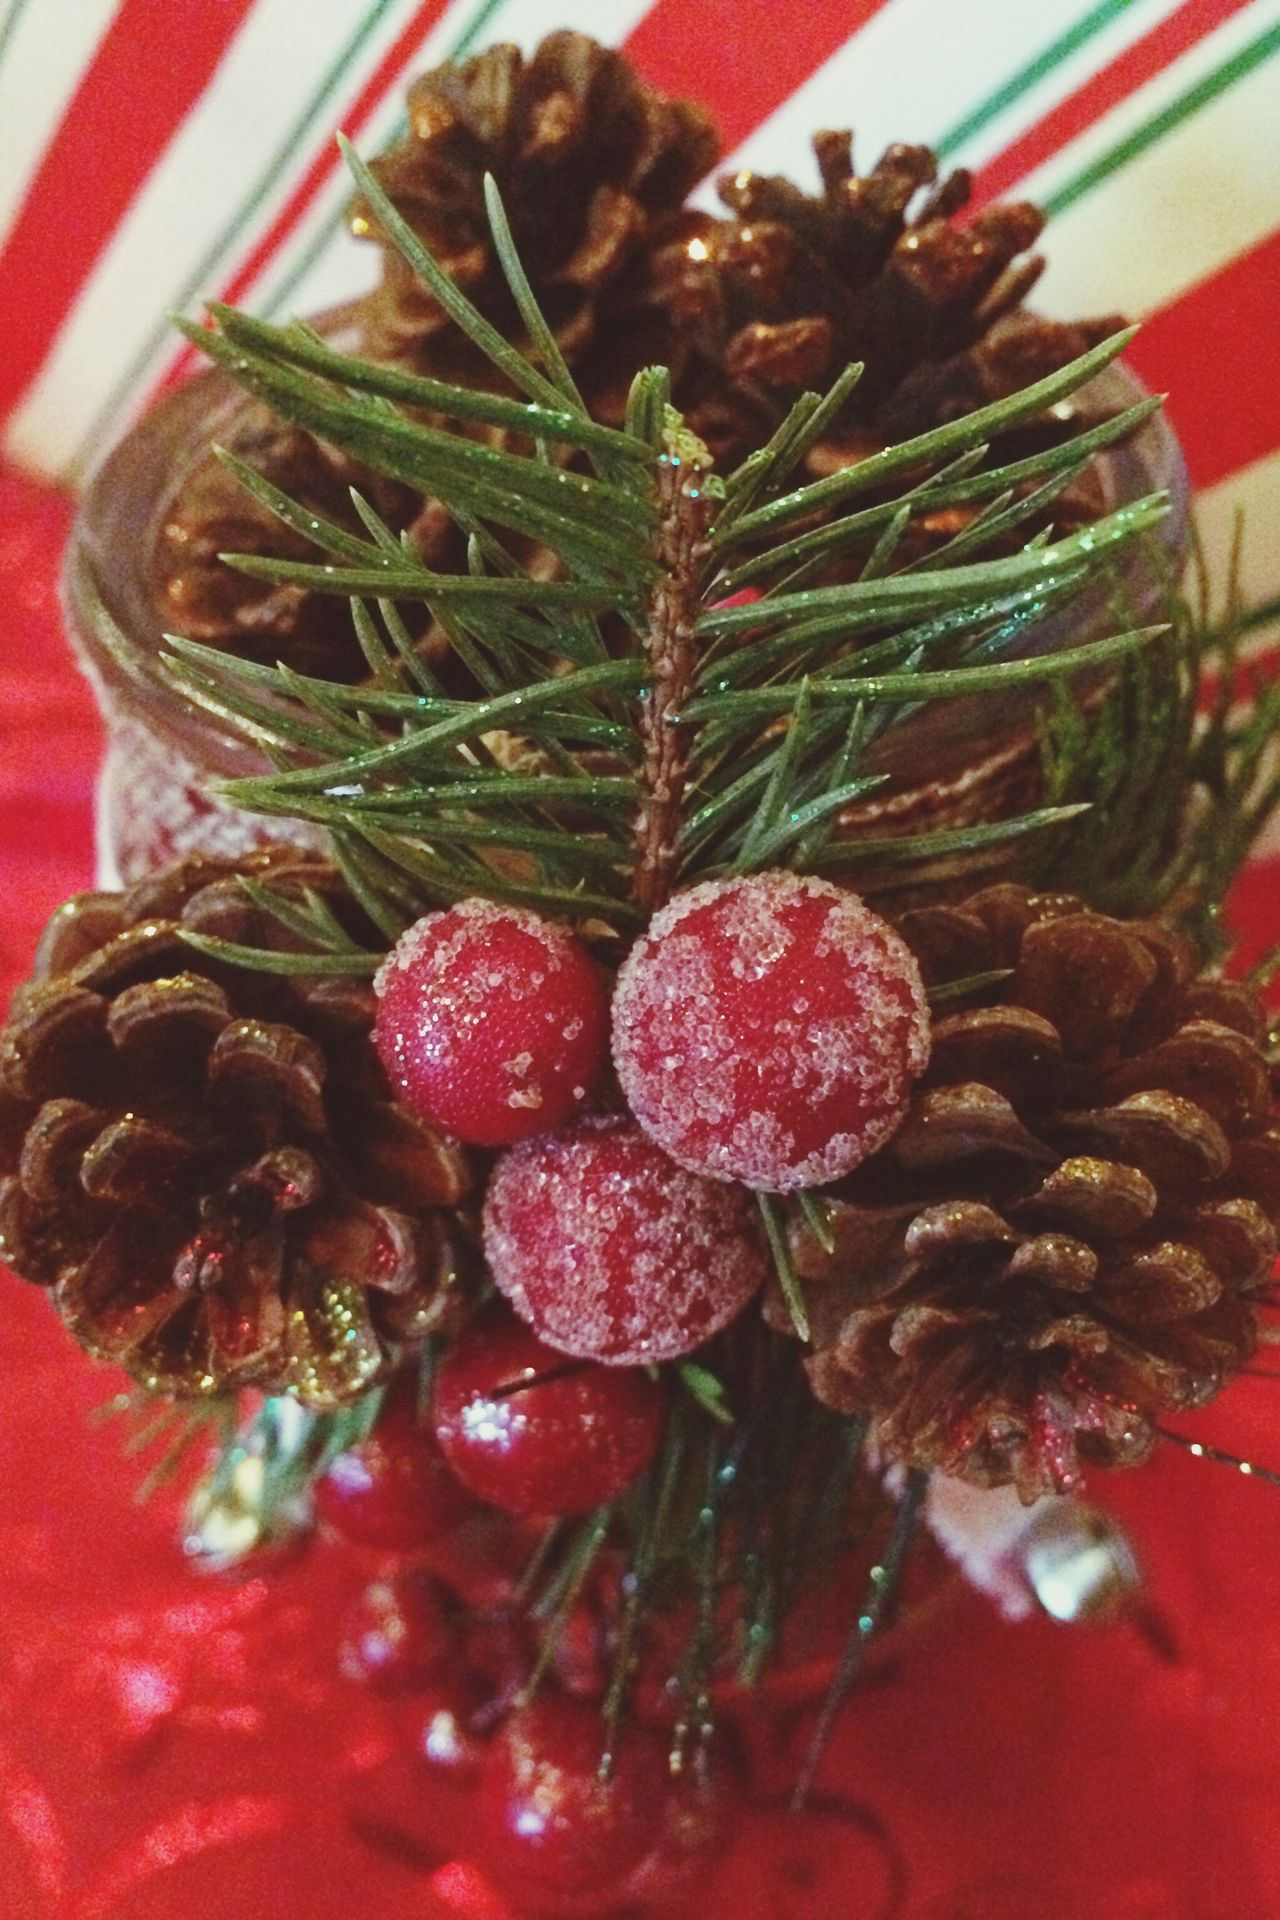 Pinecone Decoration Jar Christmas Decorations Winter Mason Jar Candle Jar The Culture Of The Holidays Cheer Handmade For You Handmade Object Pine Cones And Cherries Christmas Time